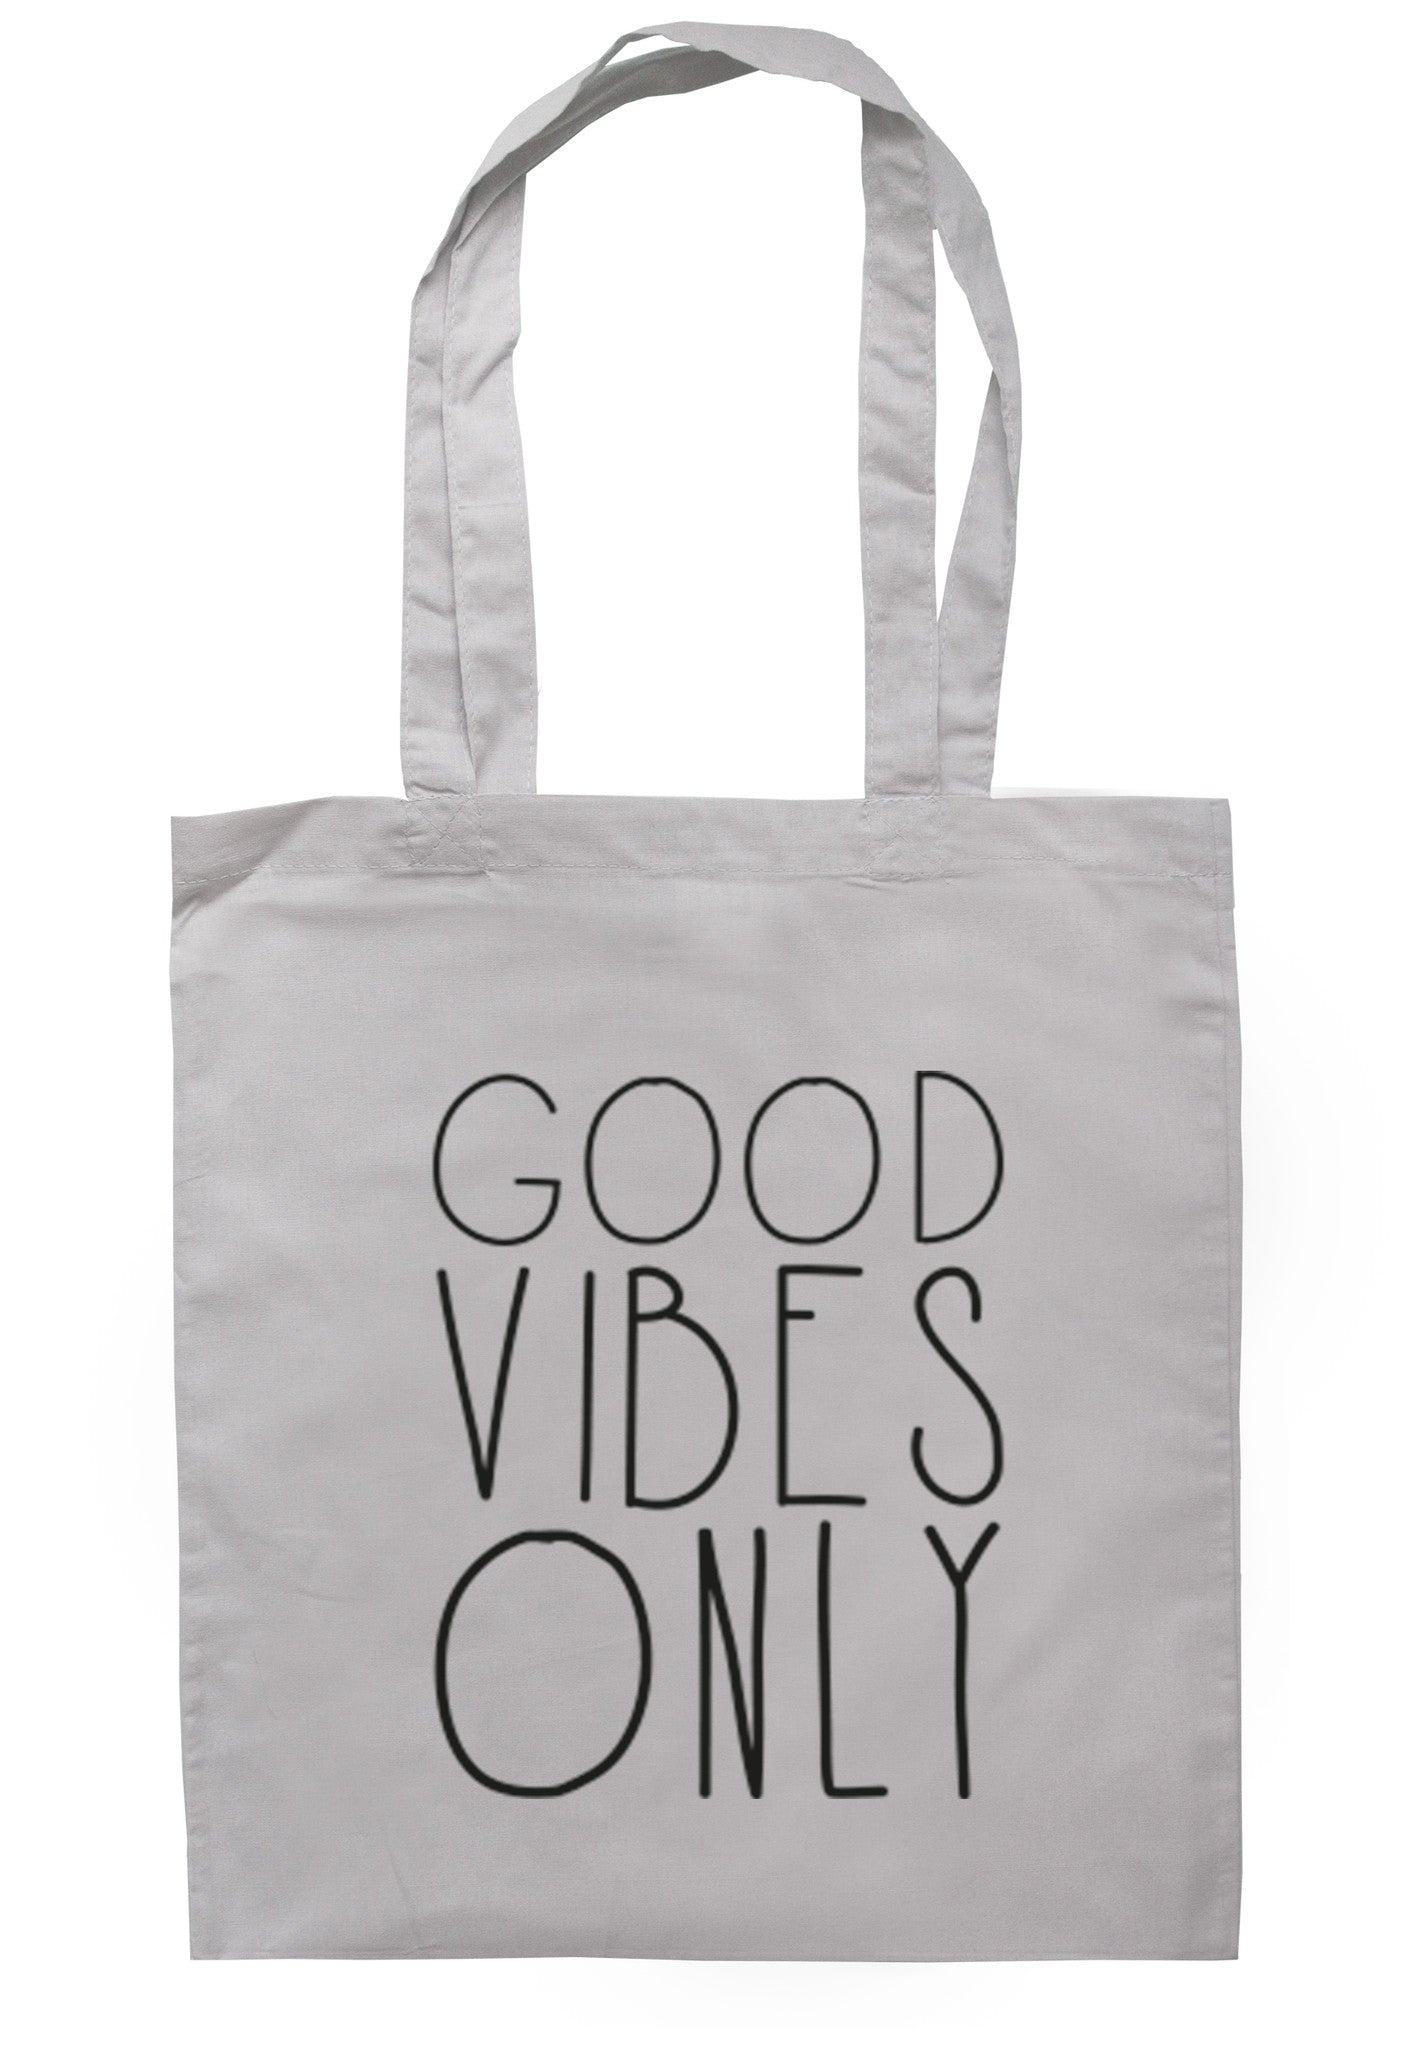 Good Vibes Only Tote Bag TB0086 - Illustrated Identity Ltd.